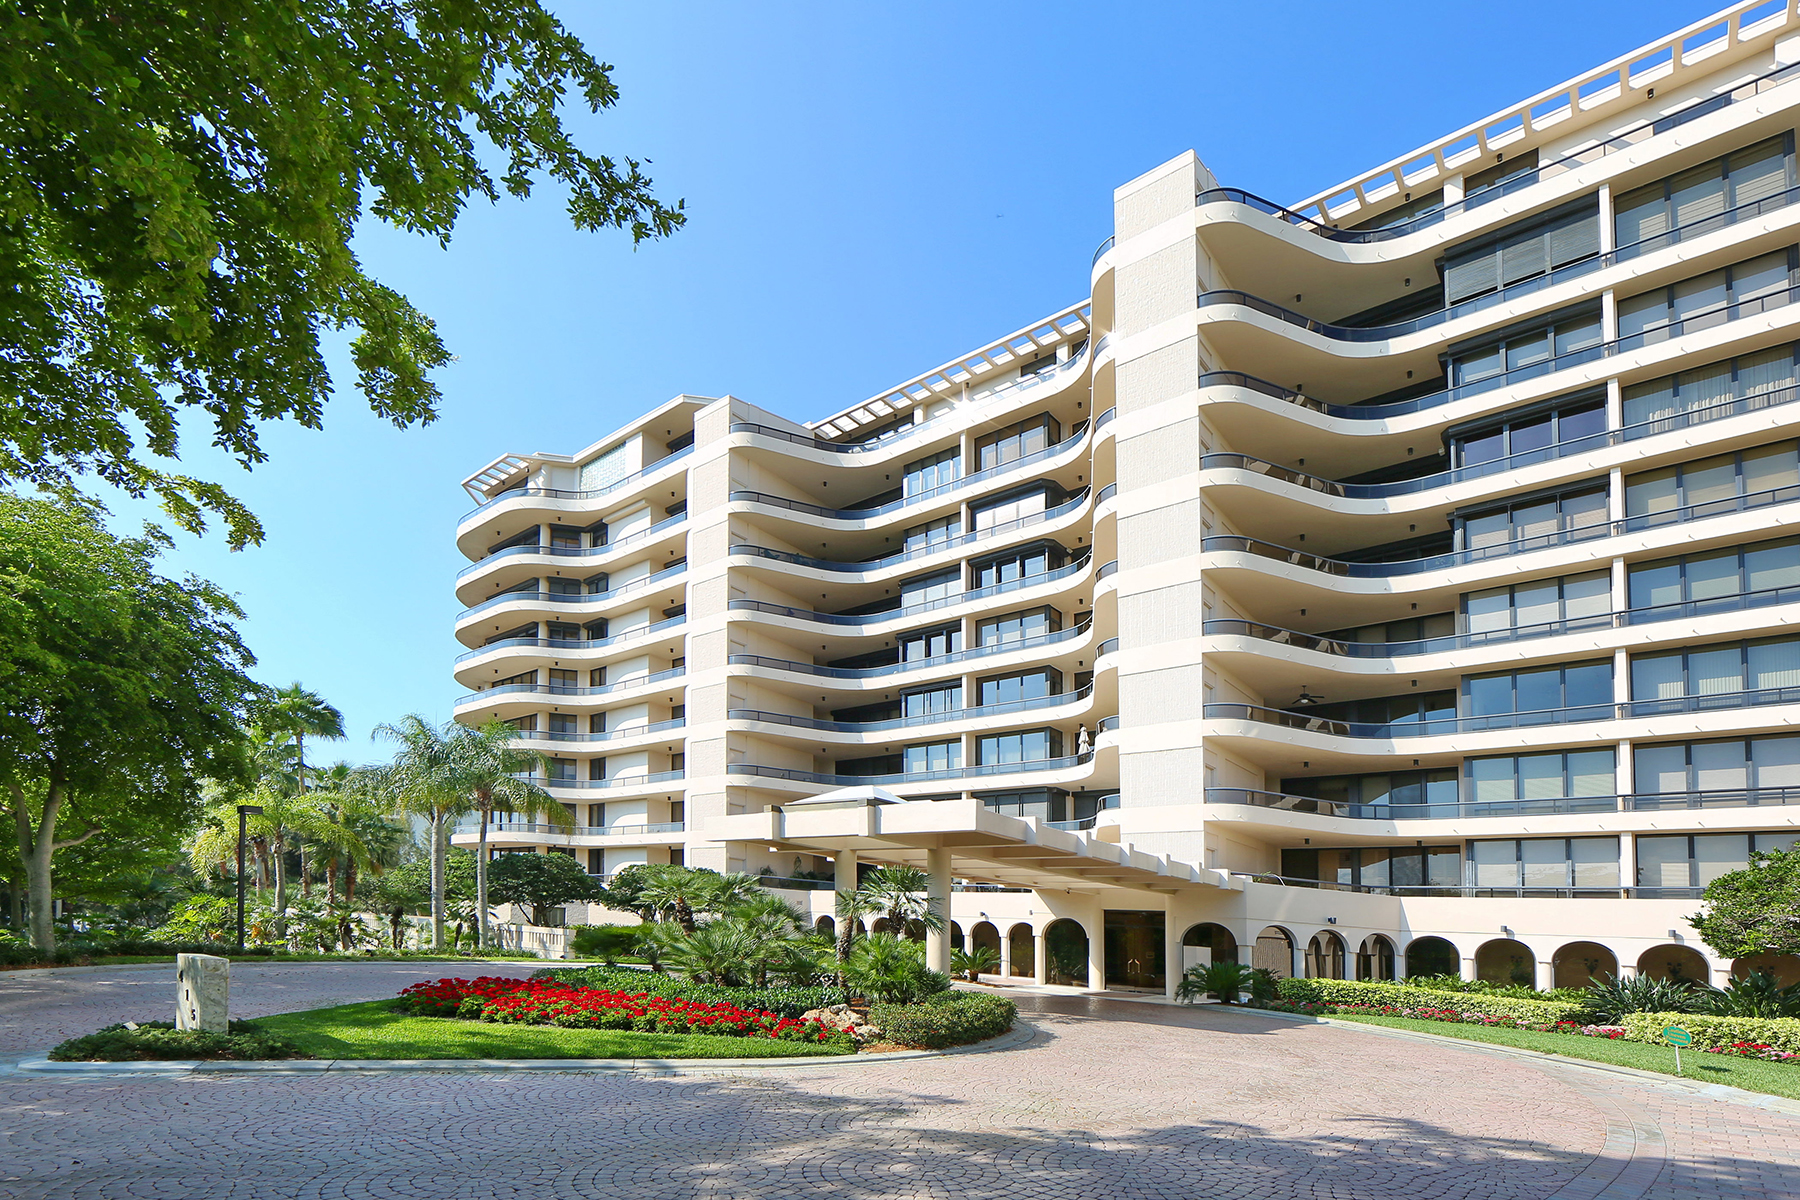 Condominium for Sale at L AMBIANCE AT LONGBOAT KEY 415 L Ambiance Dr C704-5 Longboat Key, Florida 34228 United States